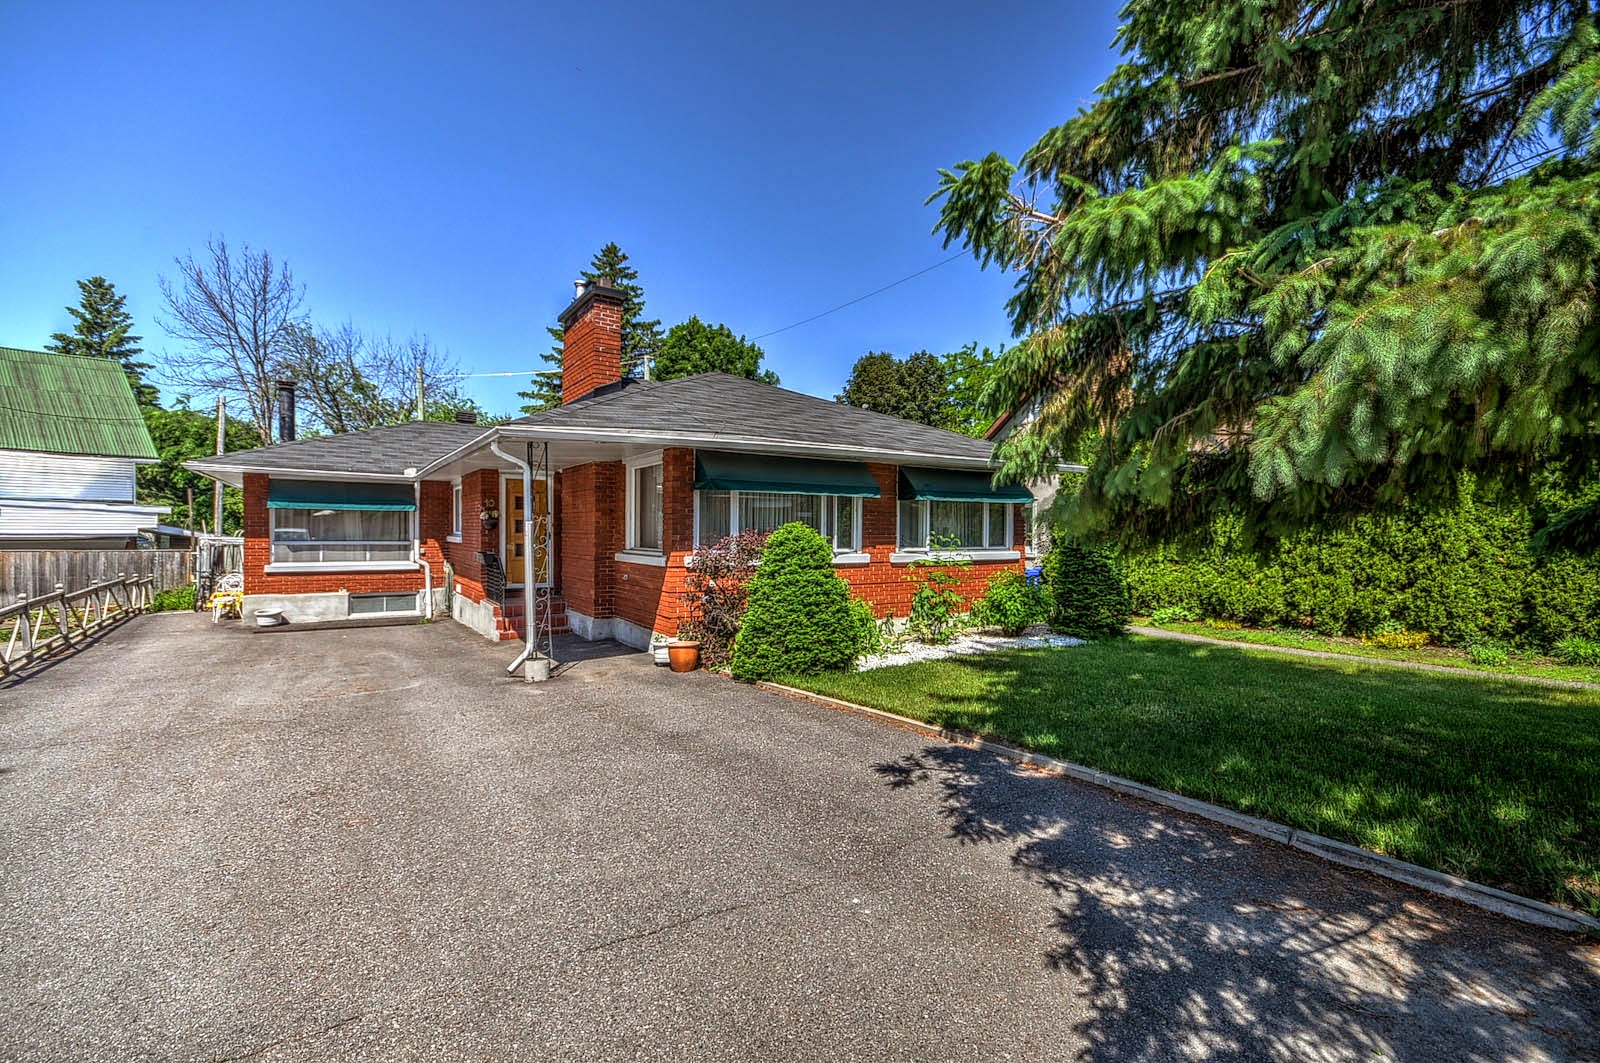 http://www.remax-quebec.com/fr/maison-a-vendre-outaouais/10-rue-millar-hull-19551843.rmx?fromsearch=agentListings_17275